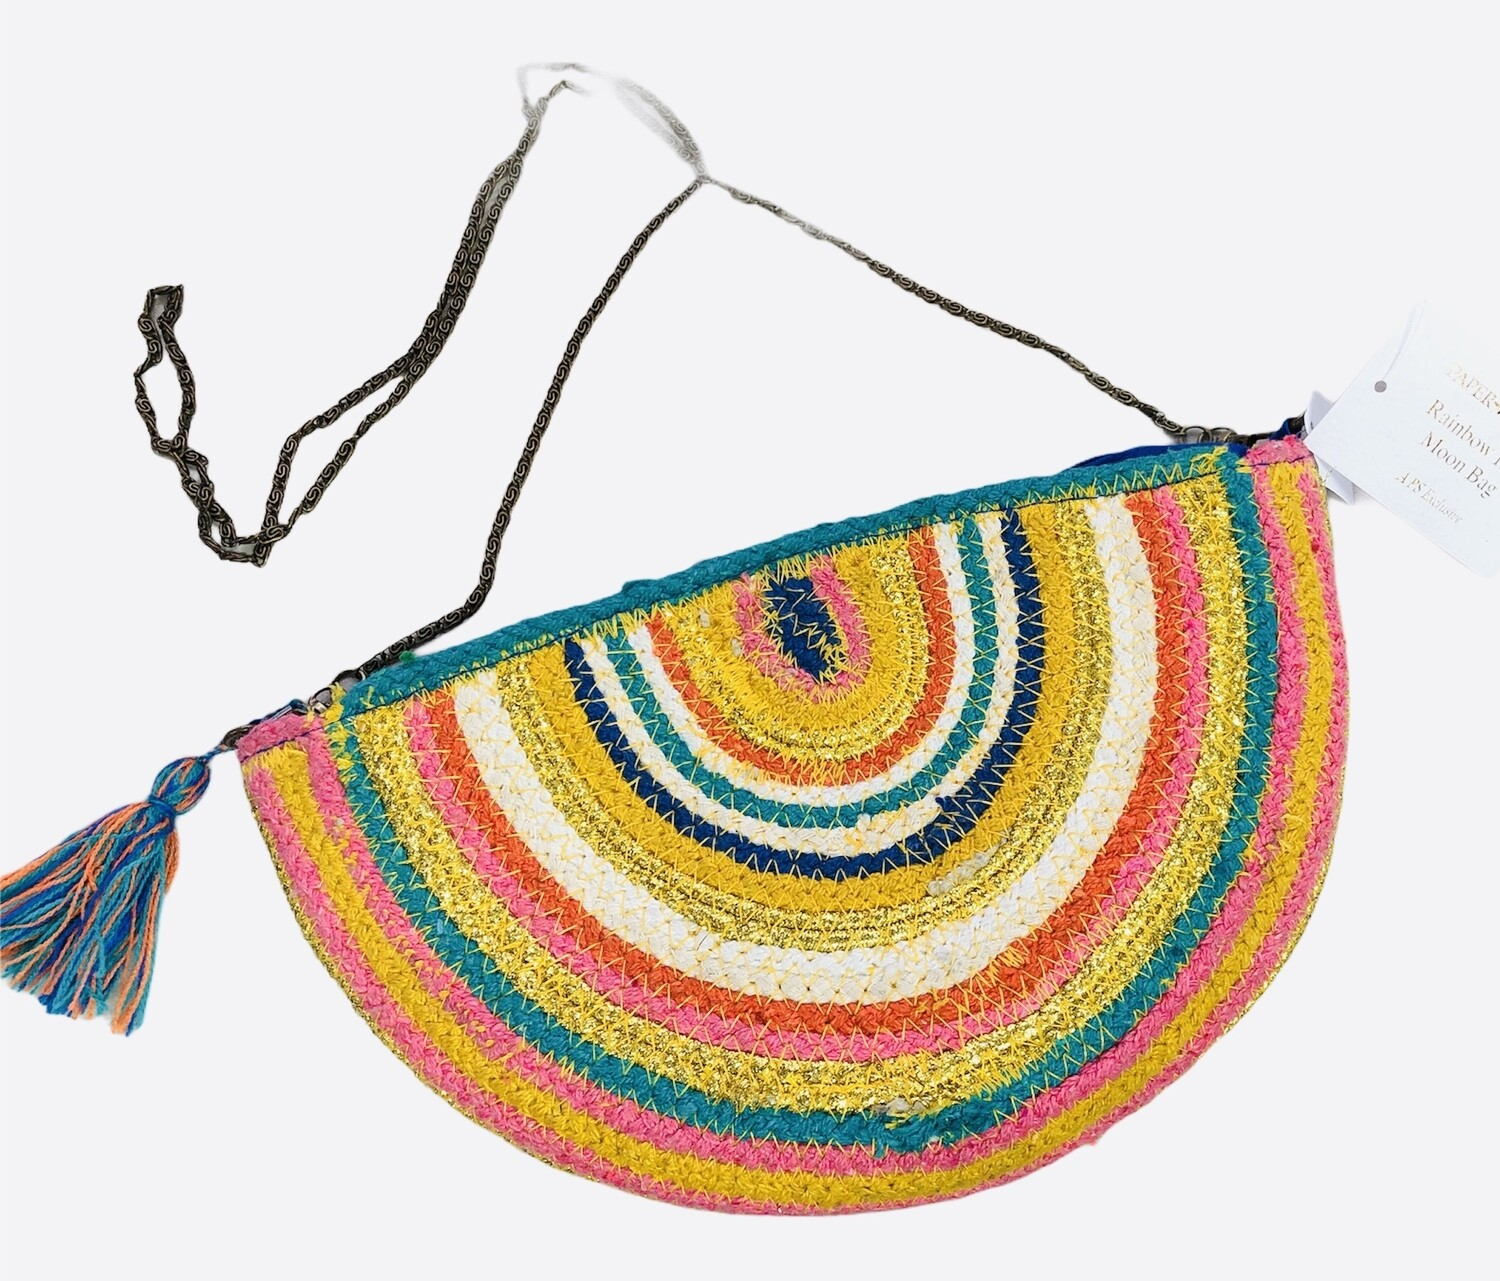 New PAPER SOURCE Multi Color Half Moon Bag